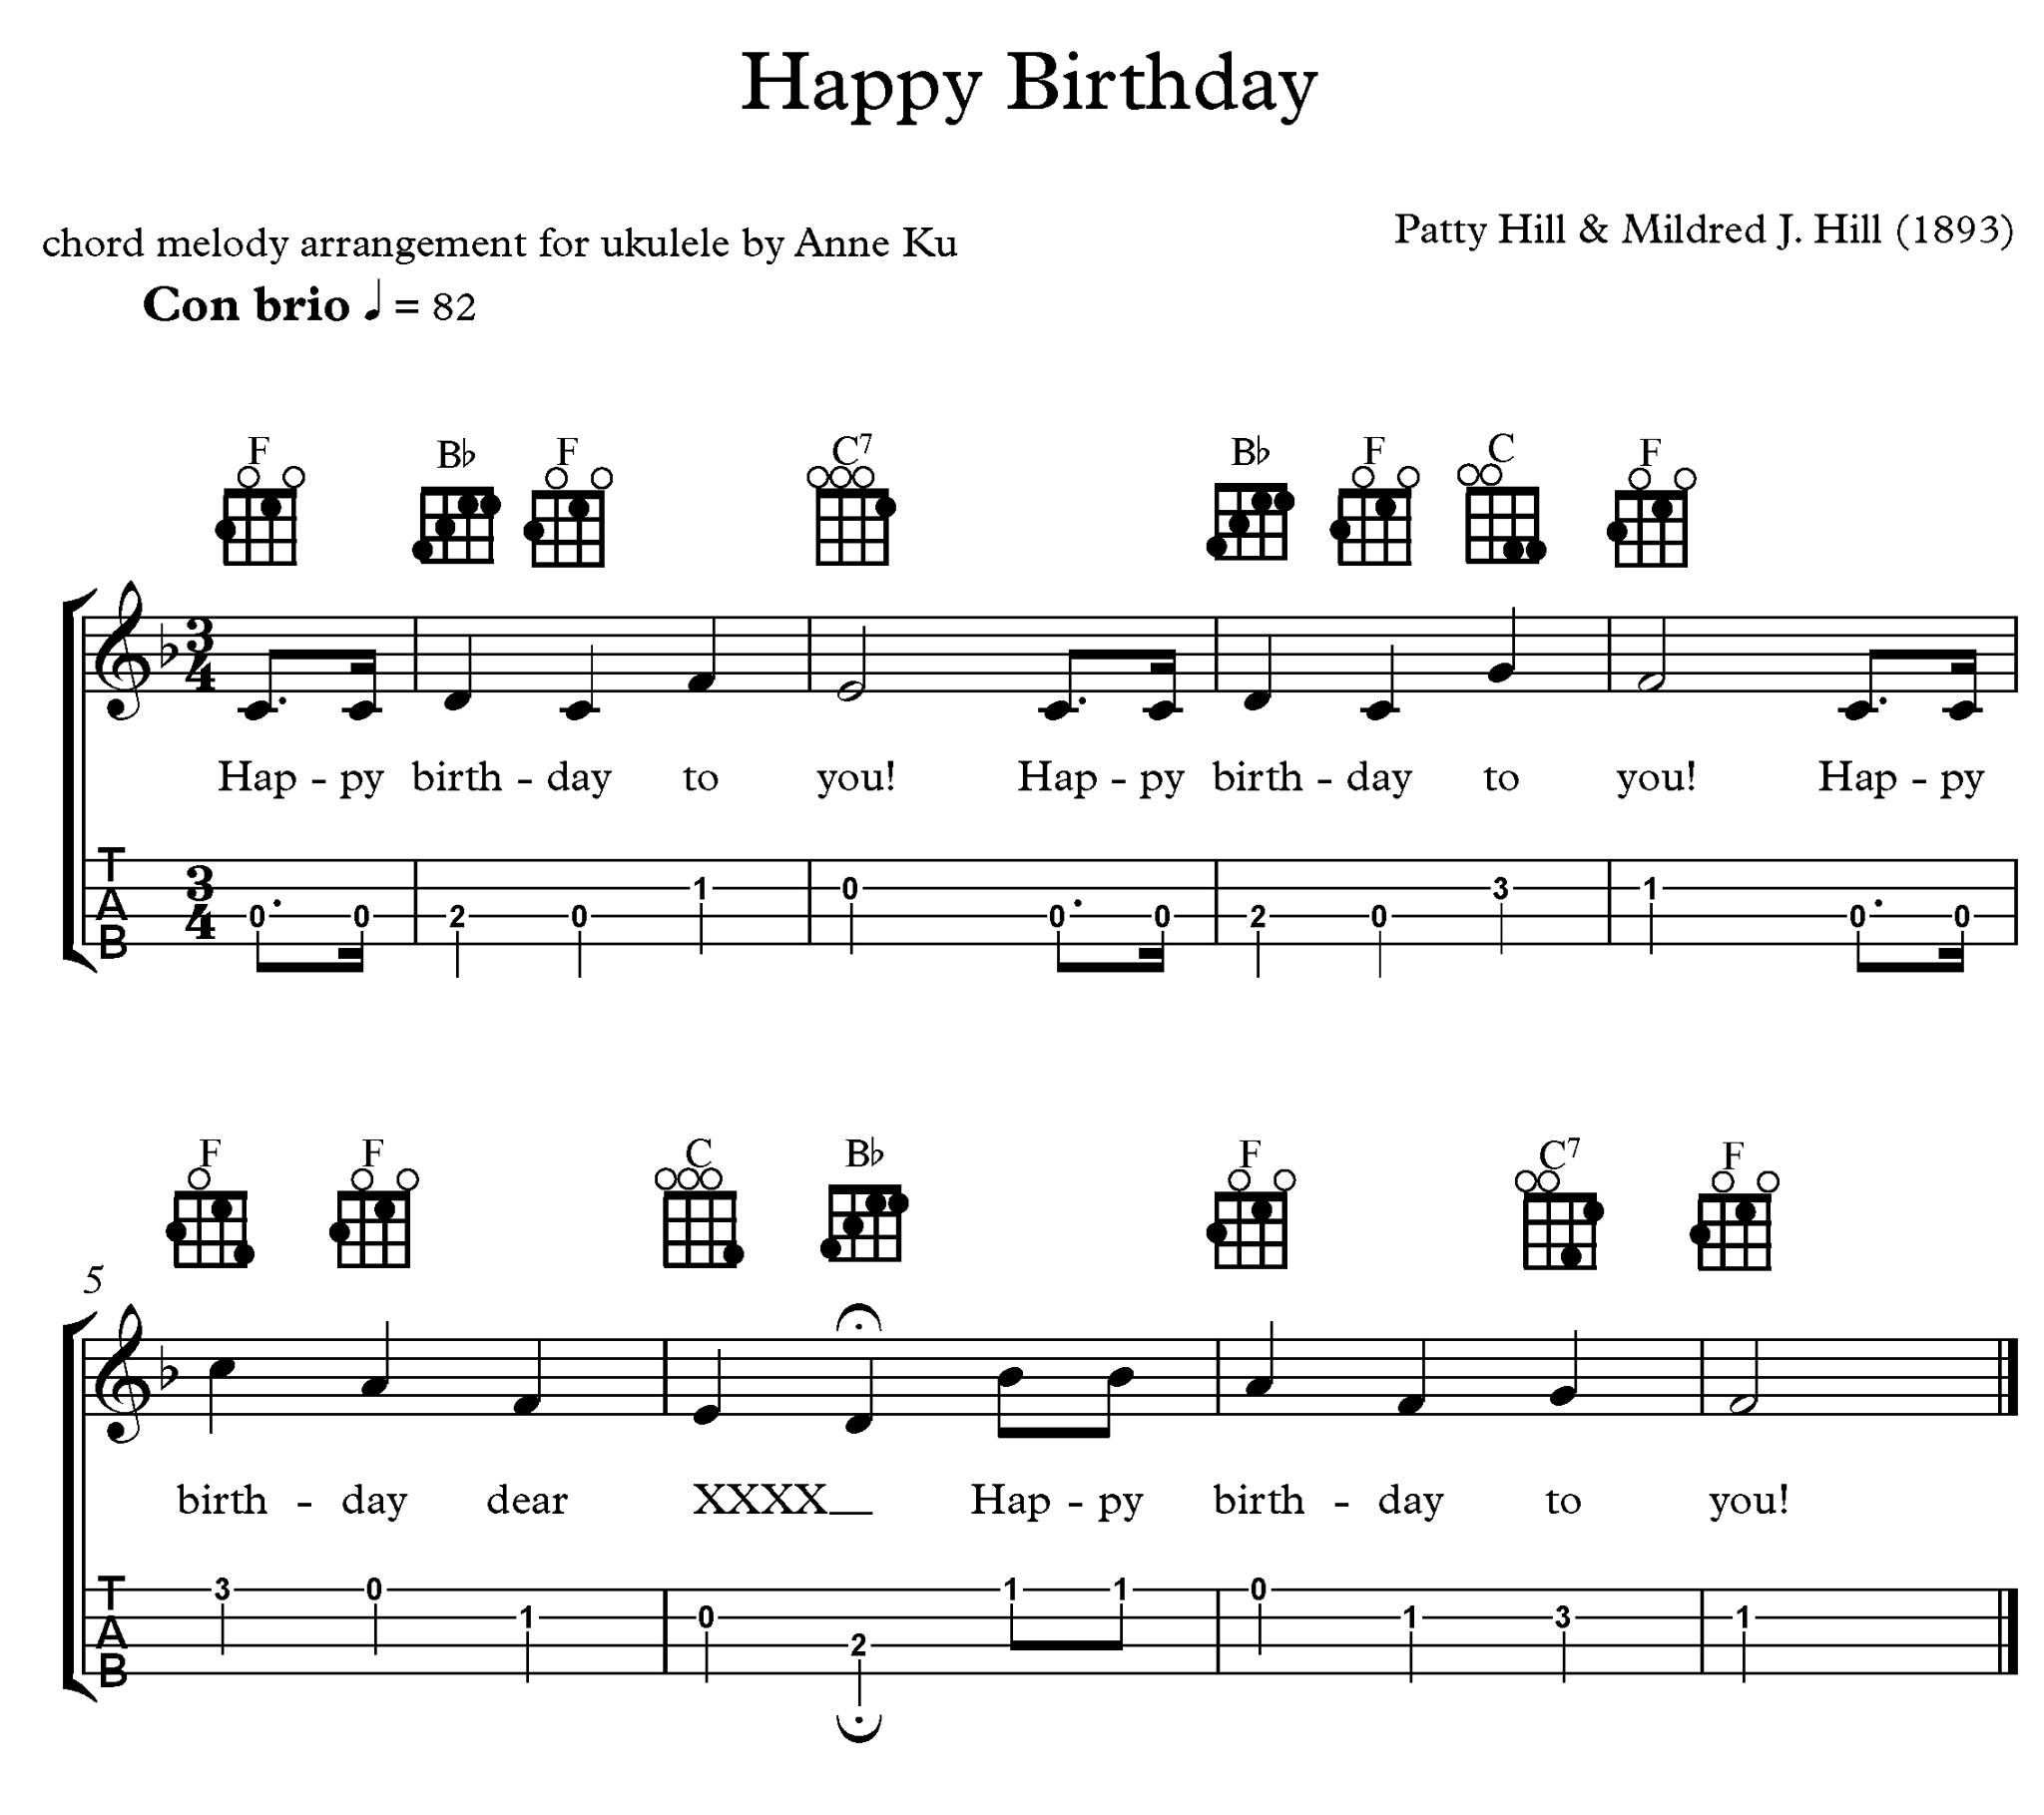 happy birthday ukulele ; 19023745_10155257218421083_8502305697858539014_o